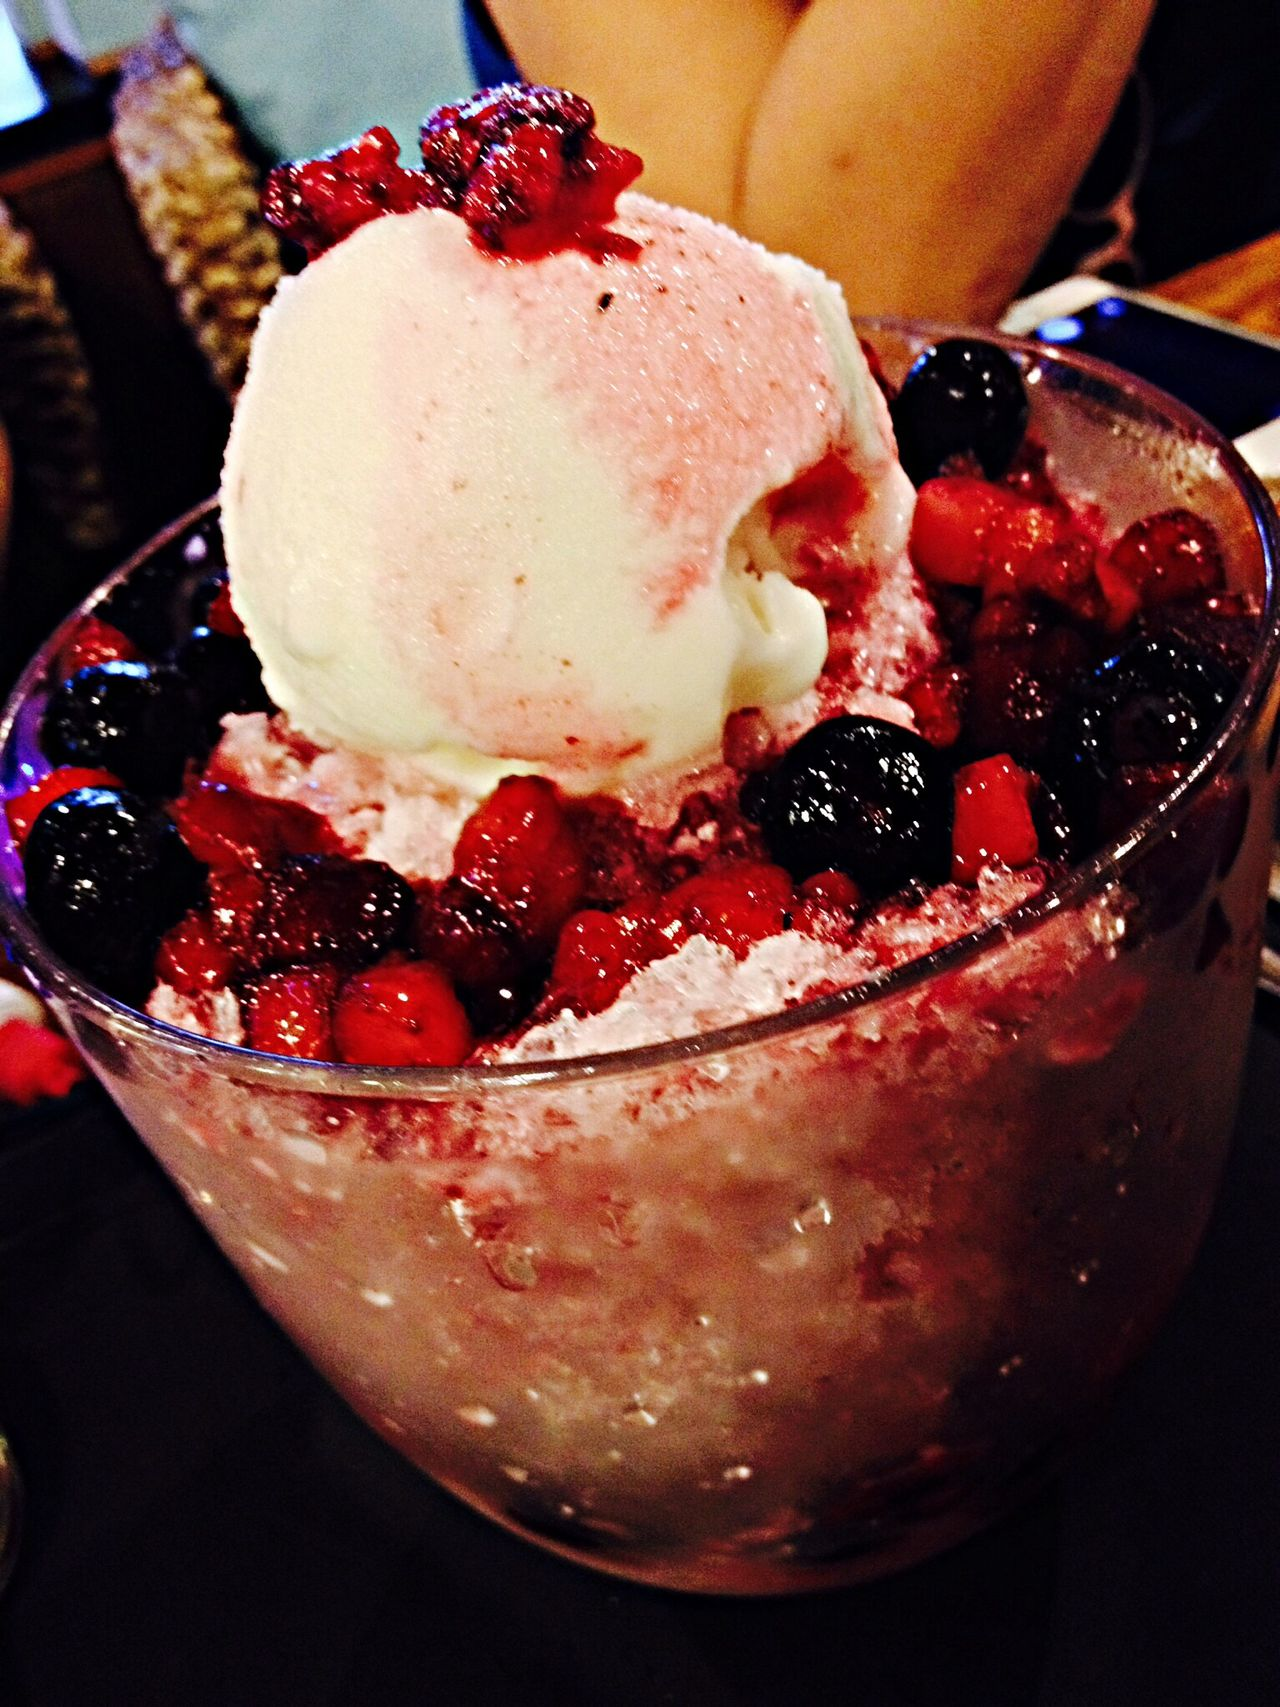 Berries Bing Ba Suk Ice Blended Desserts Koreanfood